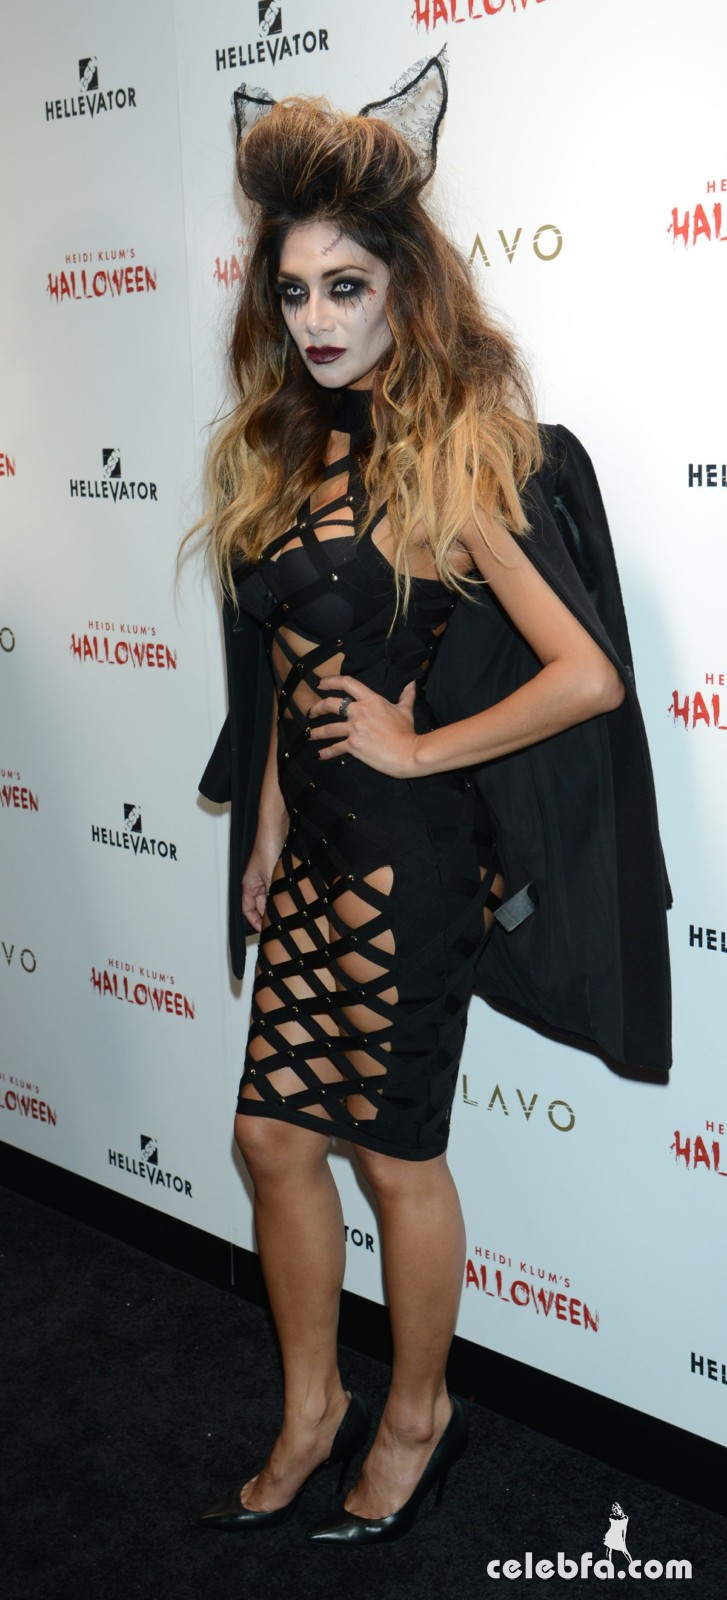 nicole-scherzinger-at-heidi-klum-halloween-party-in-new-york (6)